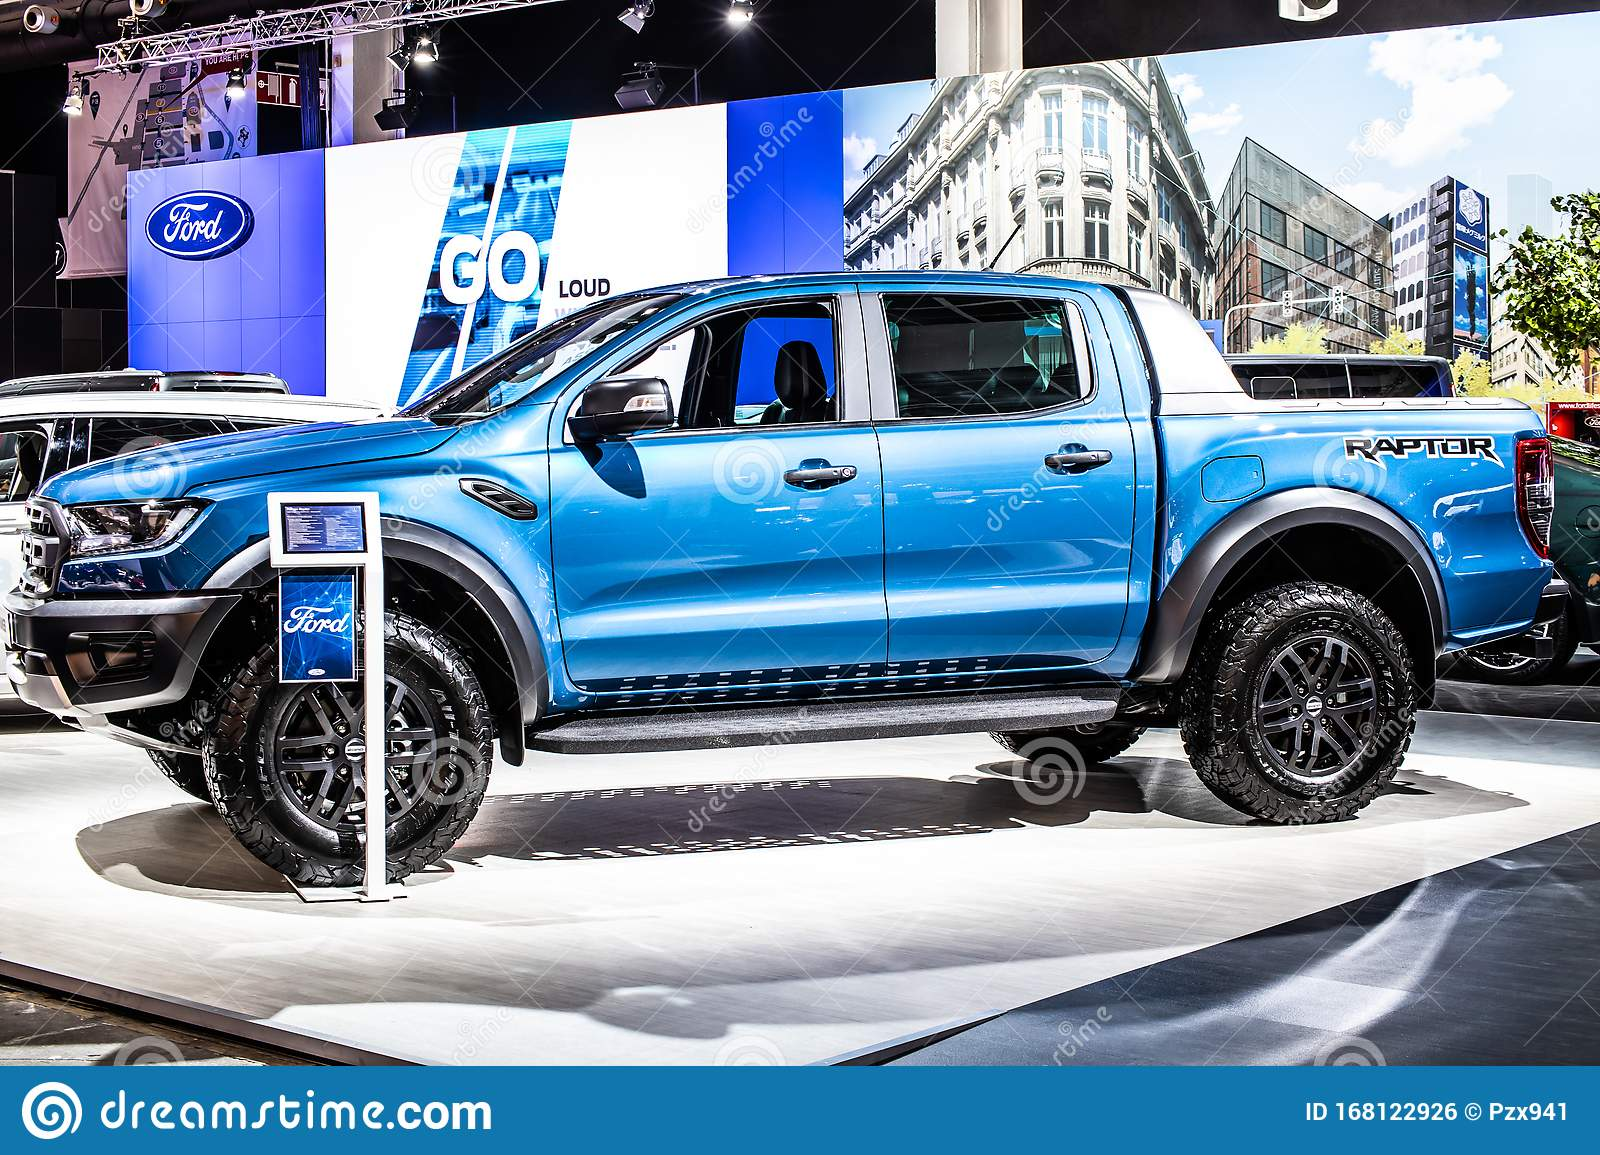 Blue Ford Ranger Iii Raptor Pickup Brussels Motor Show 3rd Gen Producido Por American Automaker Ford Motor Co Foto Editorial Imagen De Ford Producido 168122926